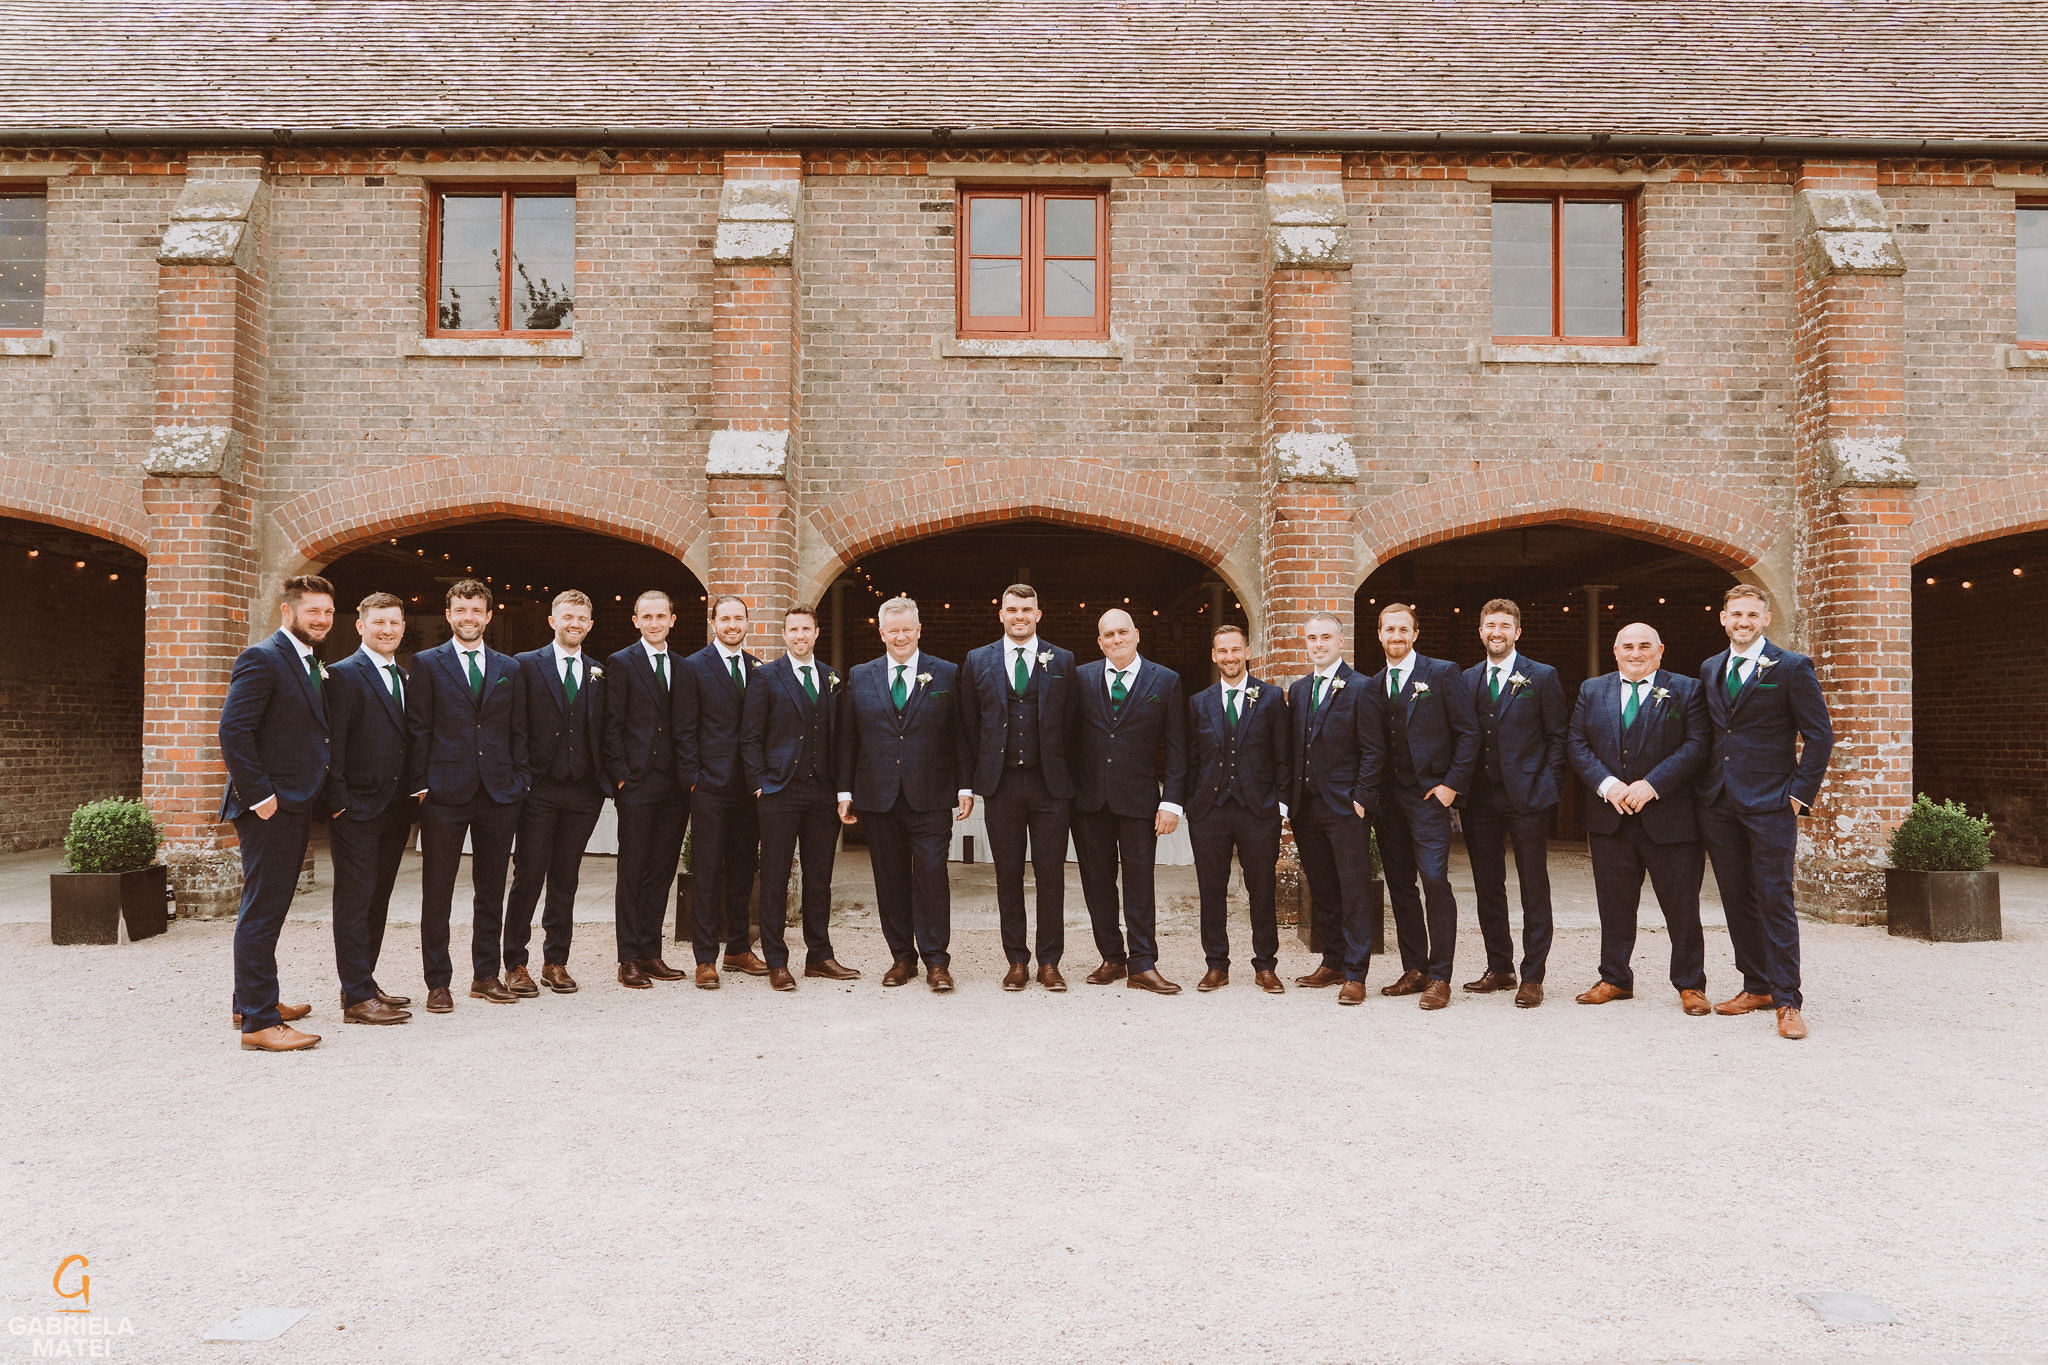 Groom and his 11 groomsmen at South Stoke Barn wedding venue in Arundel by gabriela matei sussex photographer